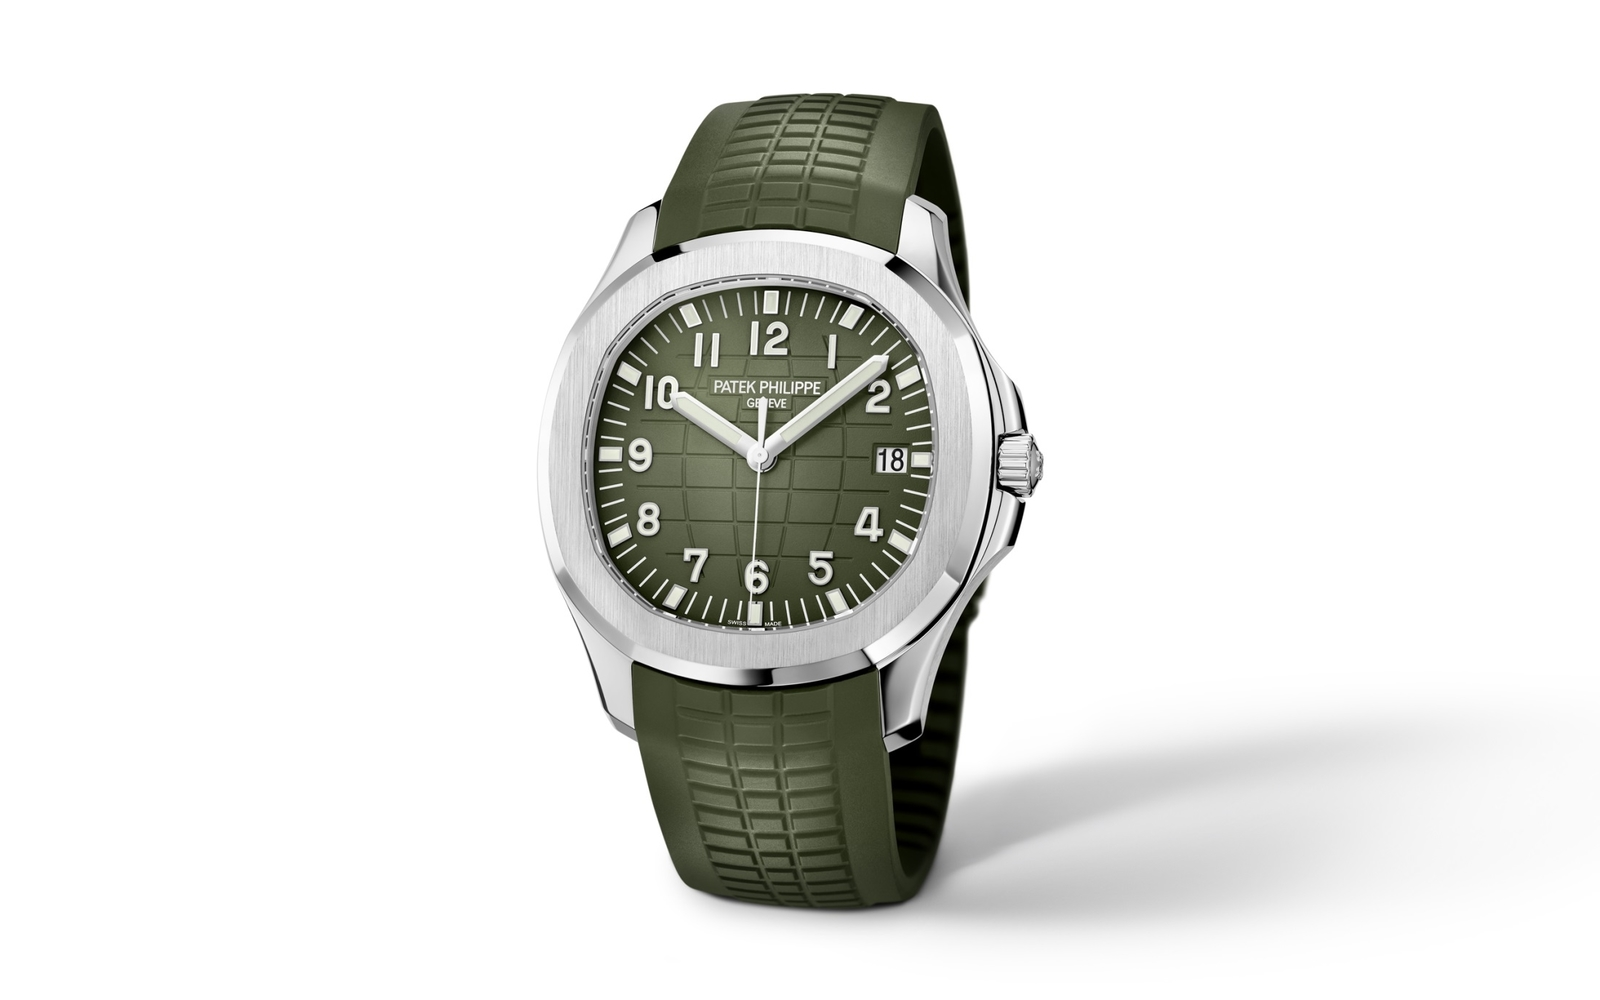 Patek Philippe Introduces The Aquanaut Ref 5168g In Khaki